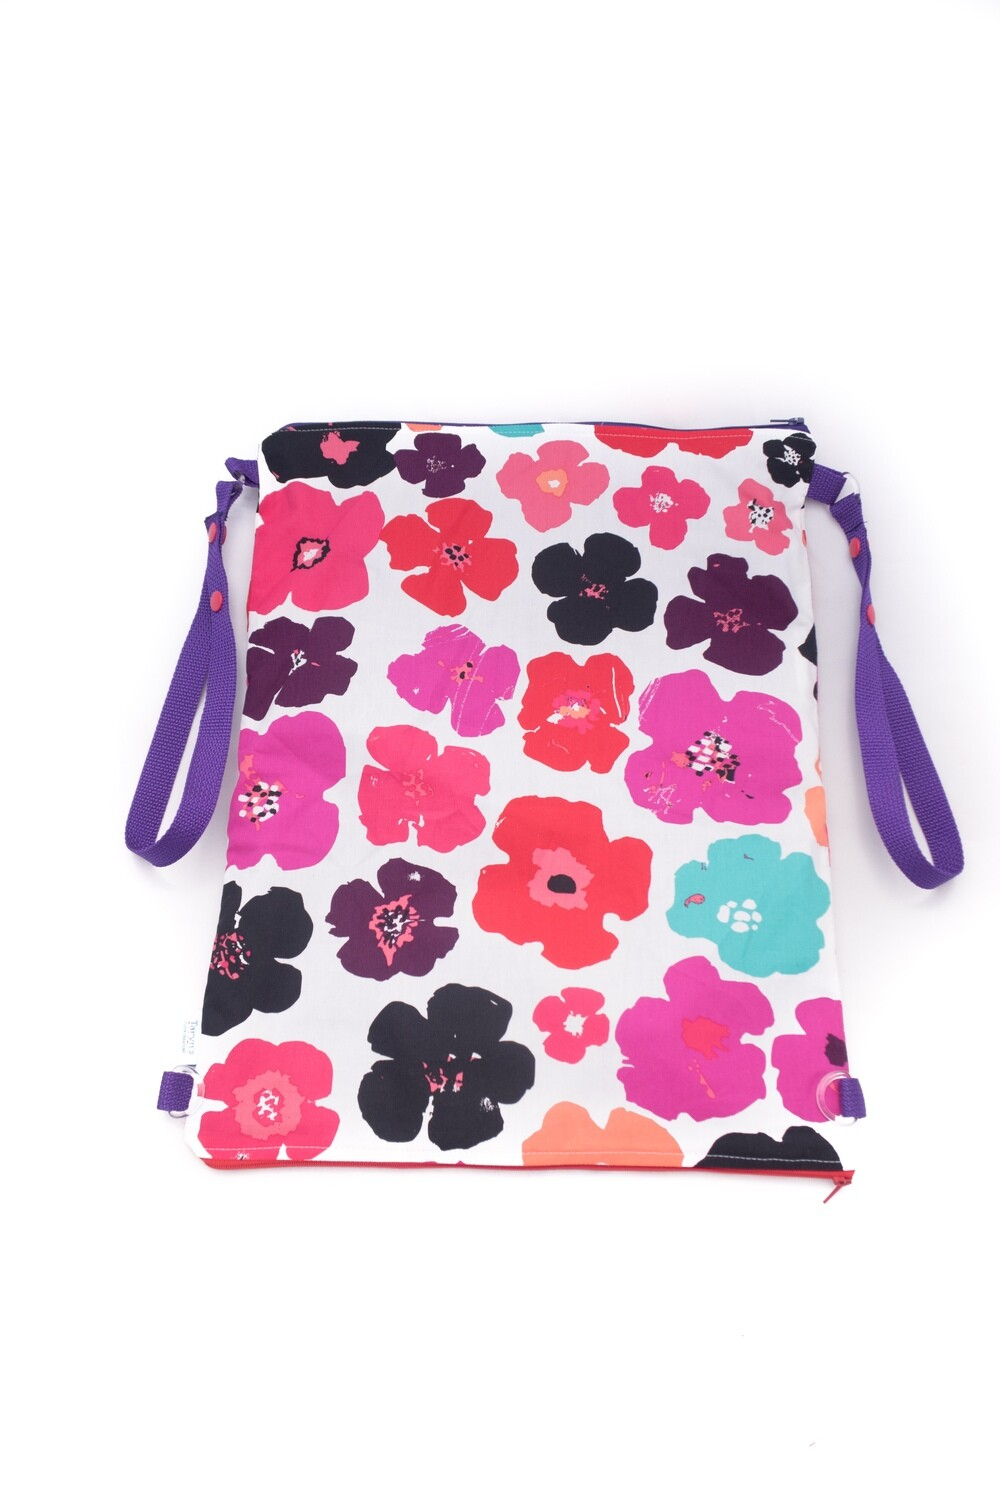 """Large Wet/ Dry Bag 15""""x 18"""" with Double Zip -Floral"""